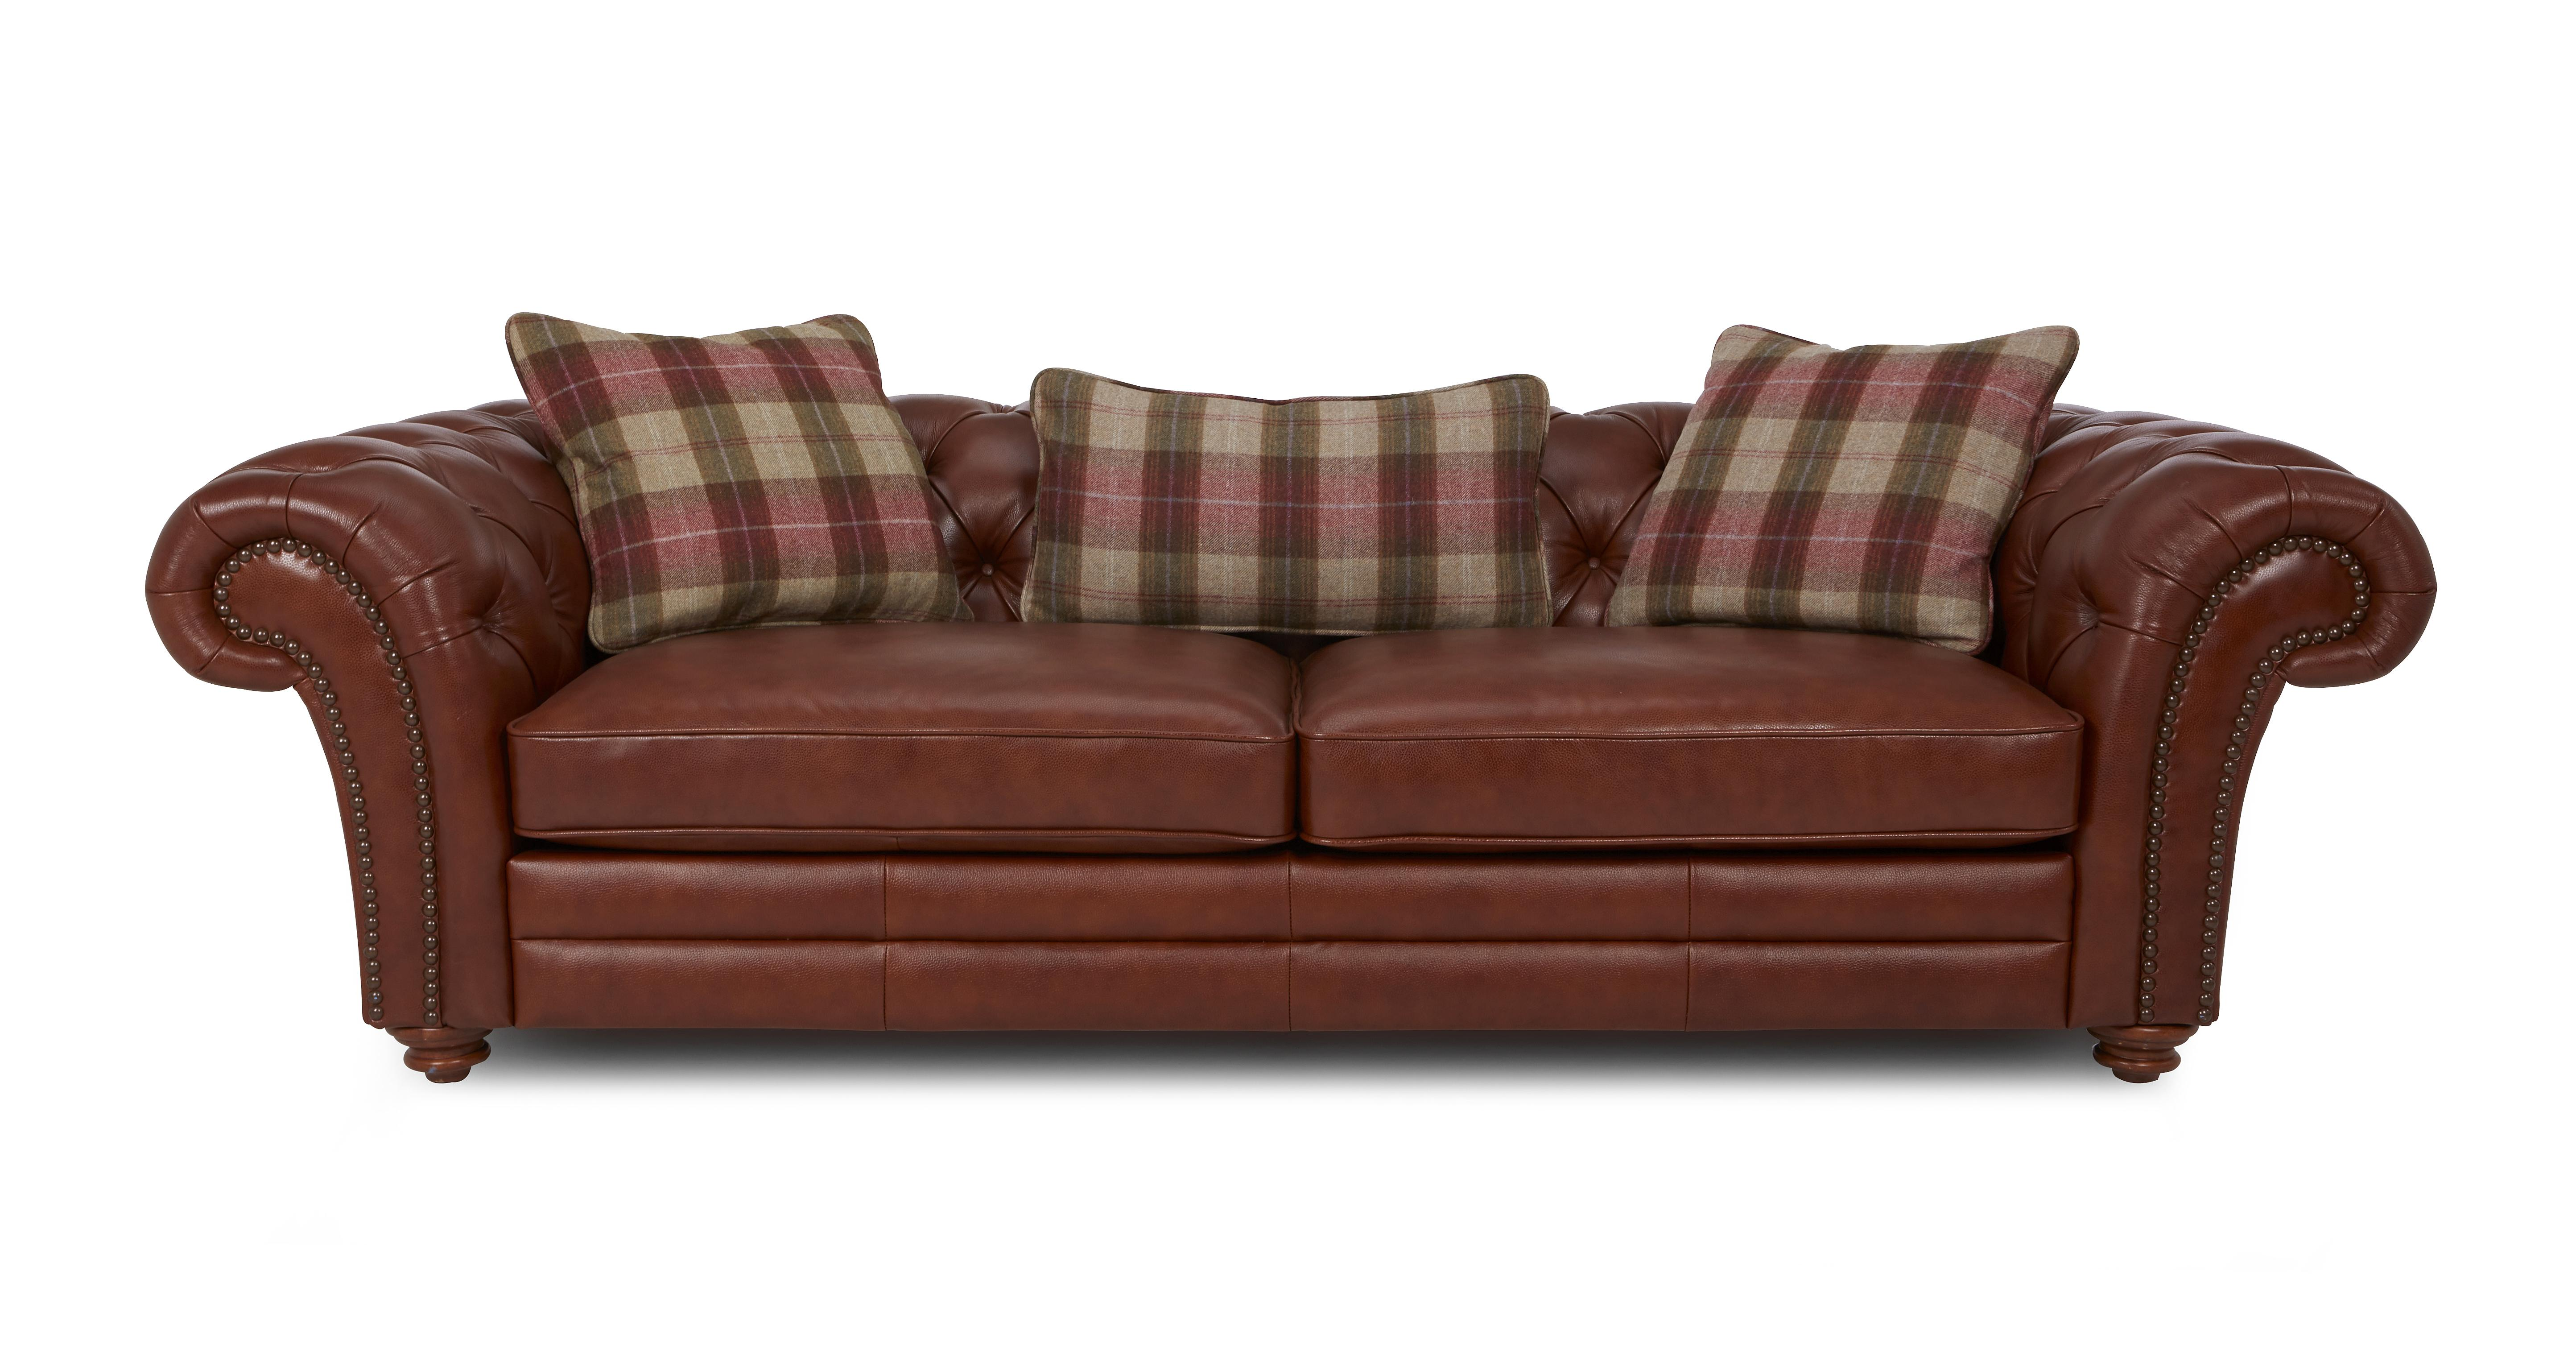 Dfs Leather Sofa Beckford 3 Seater Sofa